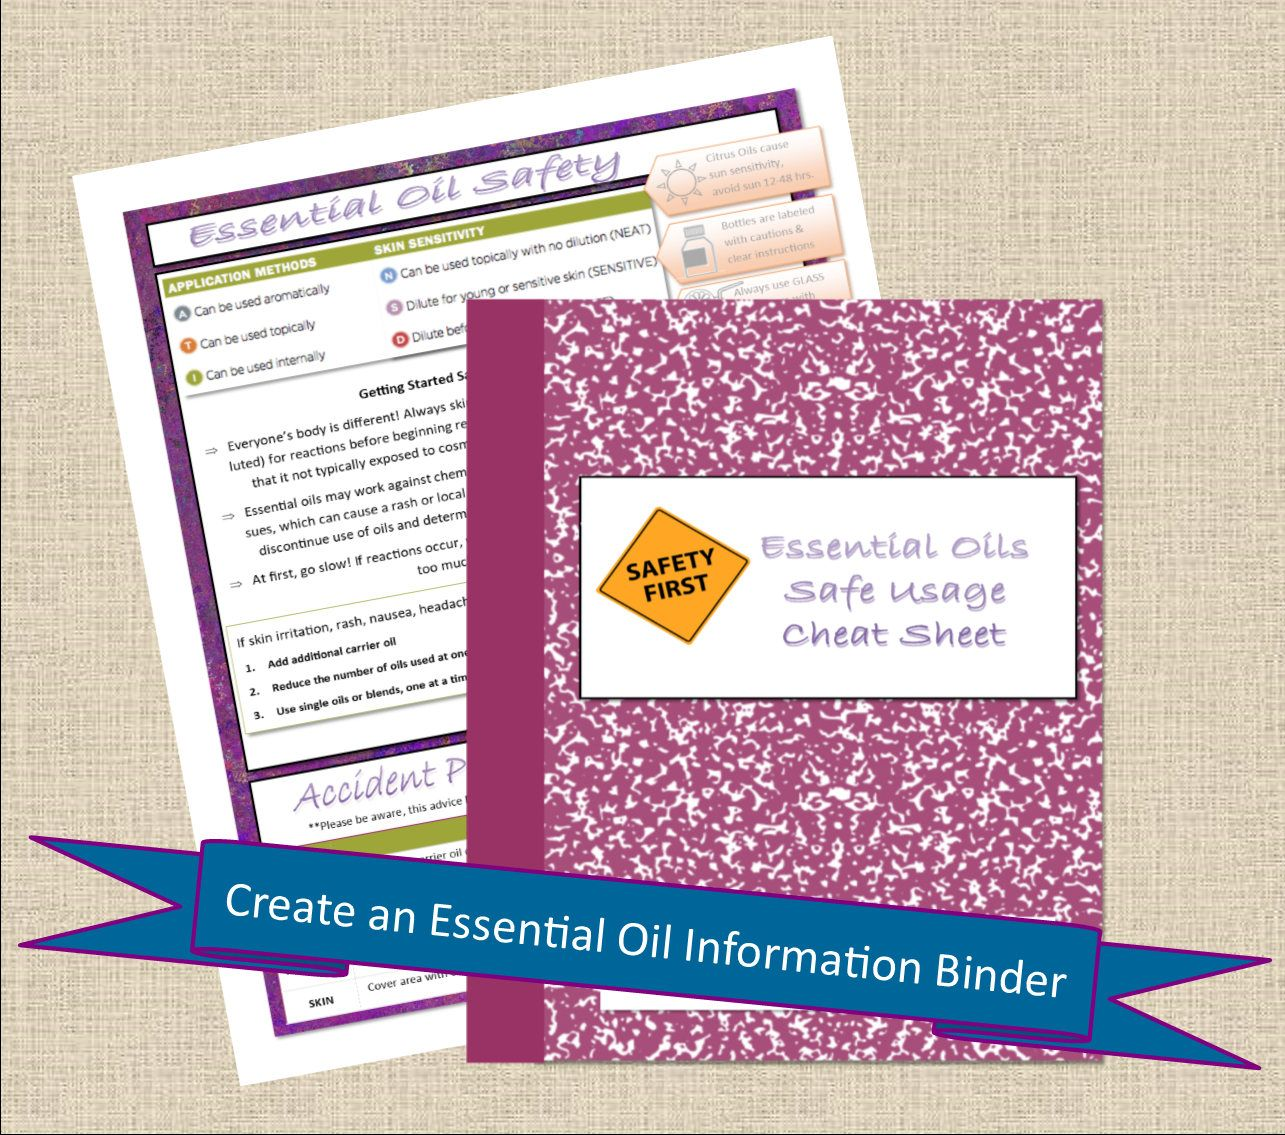 Essential Oil Safety Cheat Sheet Printable Healthy Journal